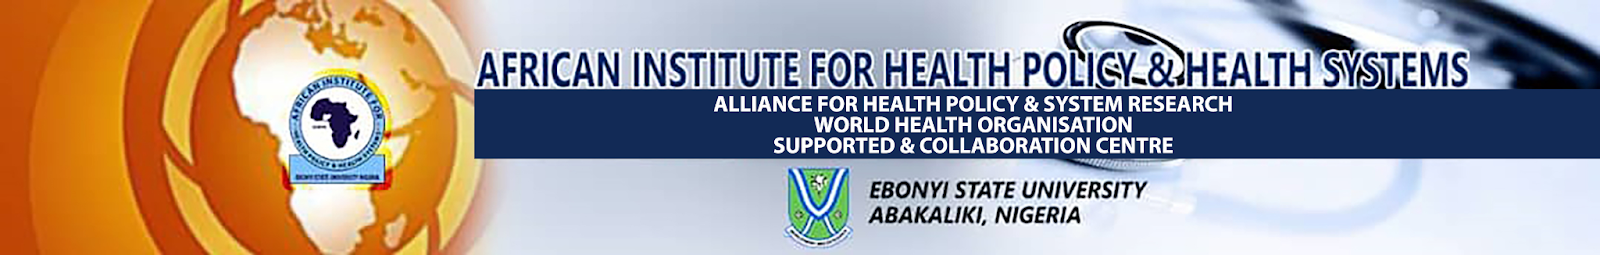 African Institute for Health Policy & Health Systems banner